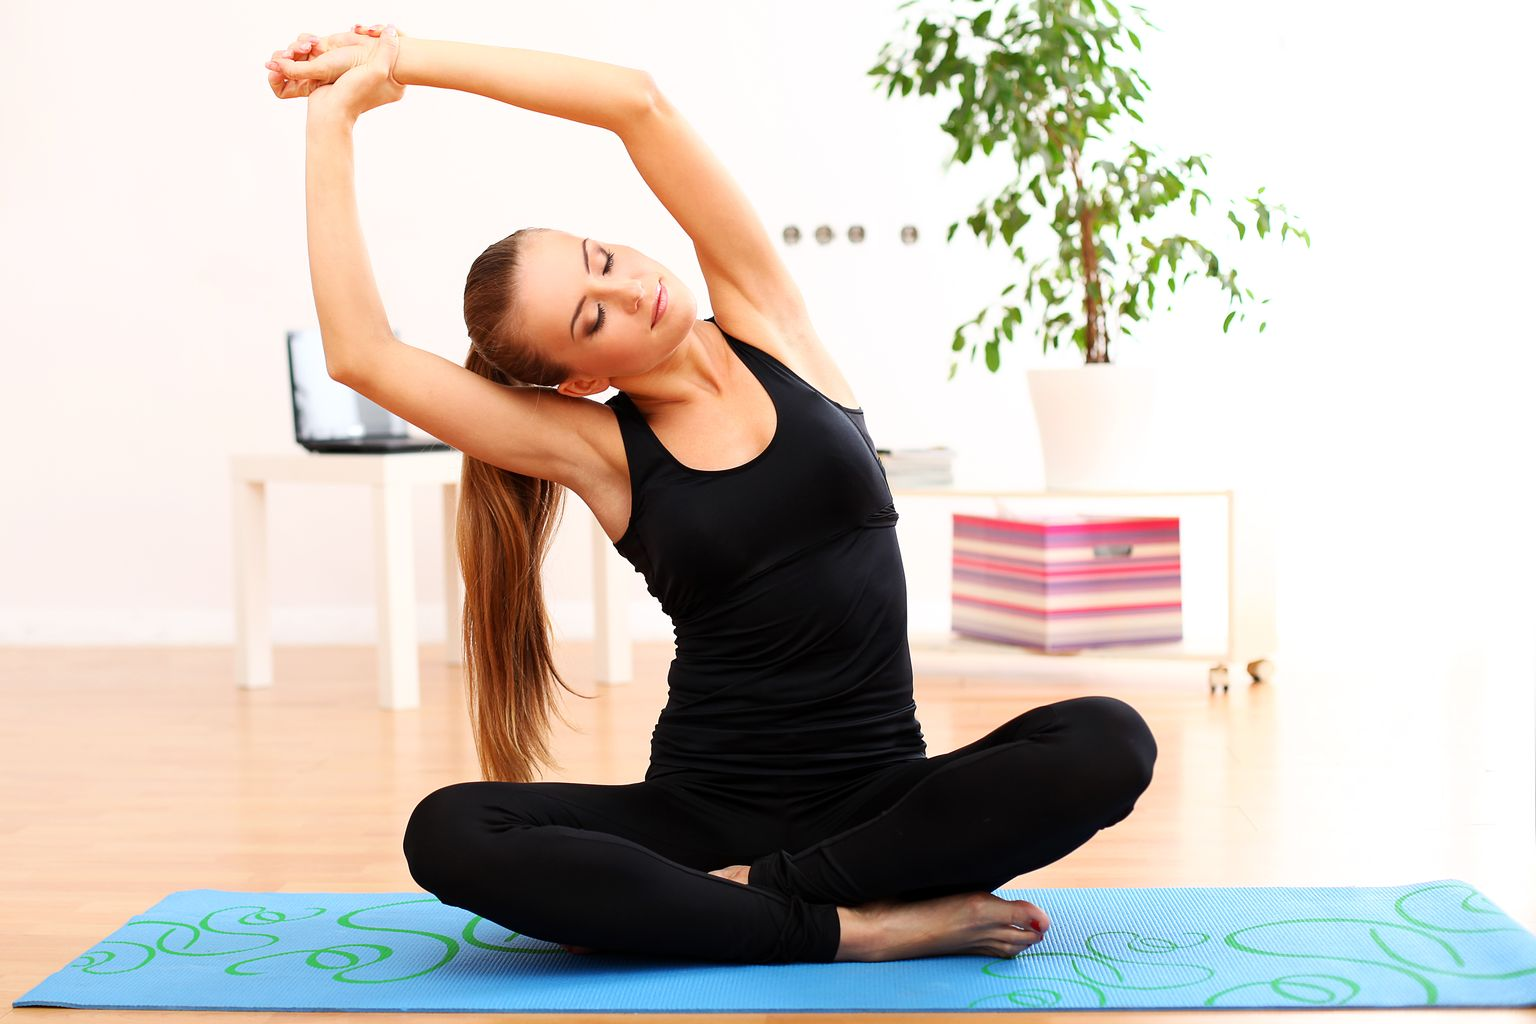 yoga homework Homework for ryt 200 ryt 200 homework assignments students who are enrolled in the ryt 200 modular format training must enroll in this course and complete the homework assignments.